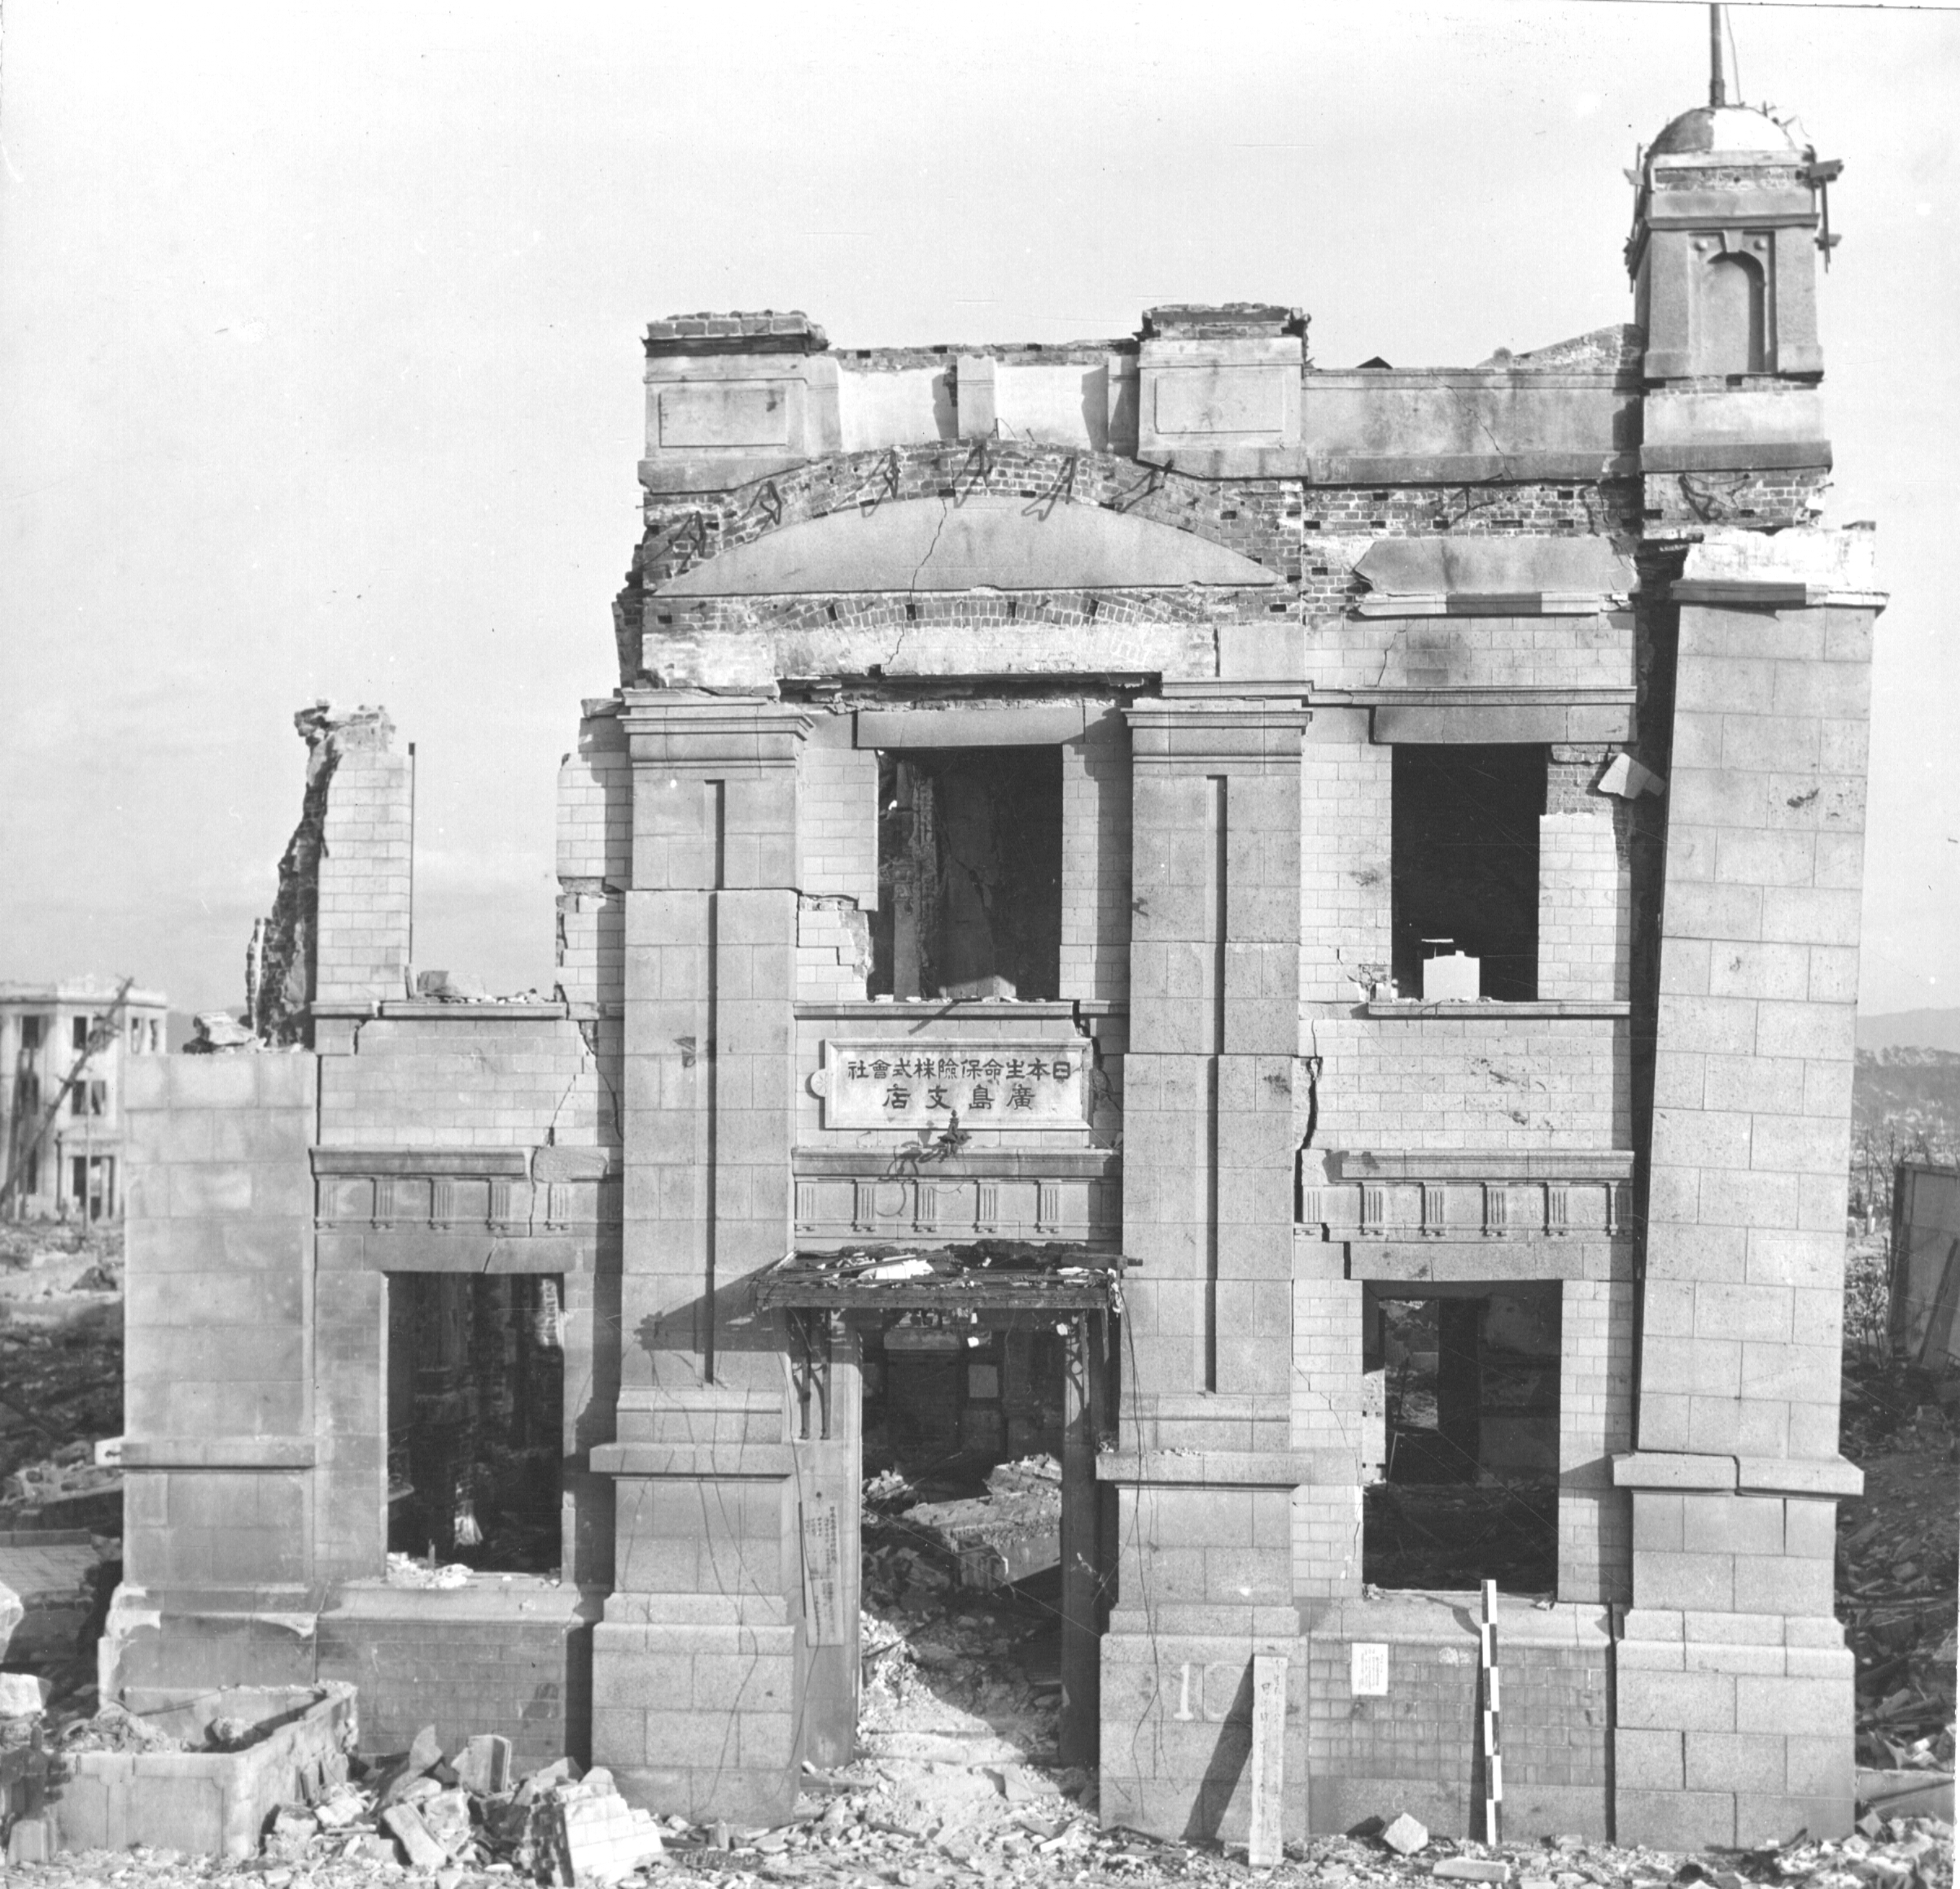 Photograph of Hiroshim after the atomic bomb. A stone building stands windowless, surrounded by rubble.